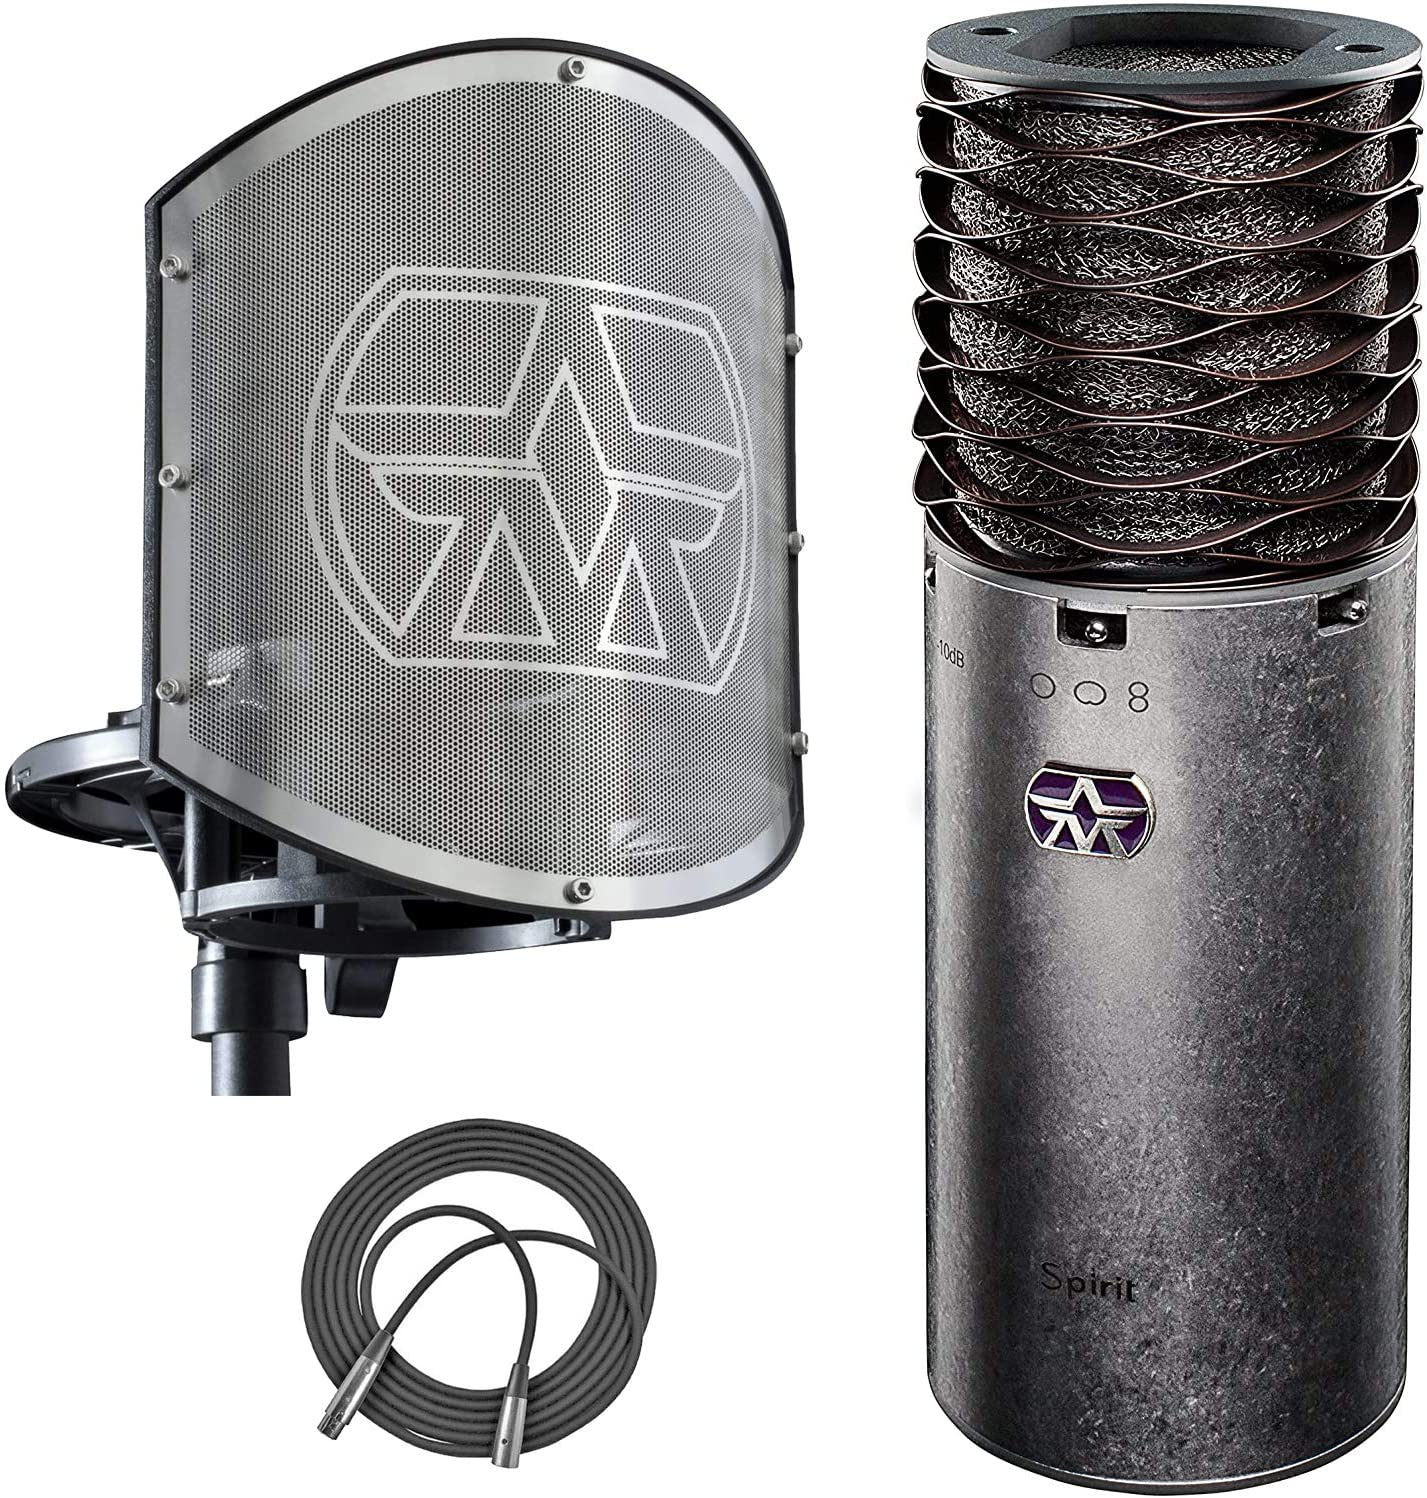 Aston Microphones Multi-Pattern Condenser Microphone Omni/Cardioid/Figure-Of-Eight Patterns + Aston Microphones Shockmount & Pop-Filter Combo + XLR Mic Cable